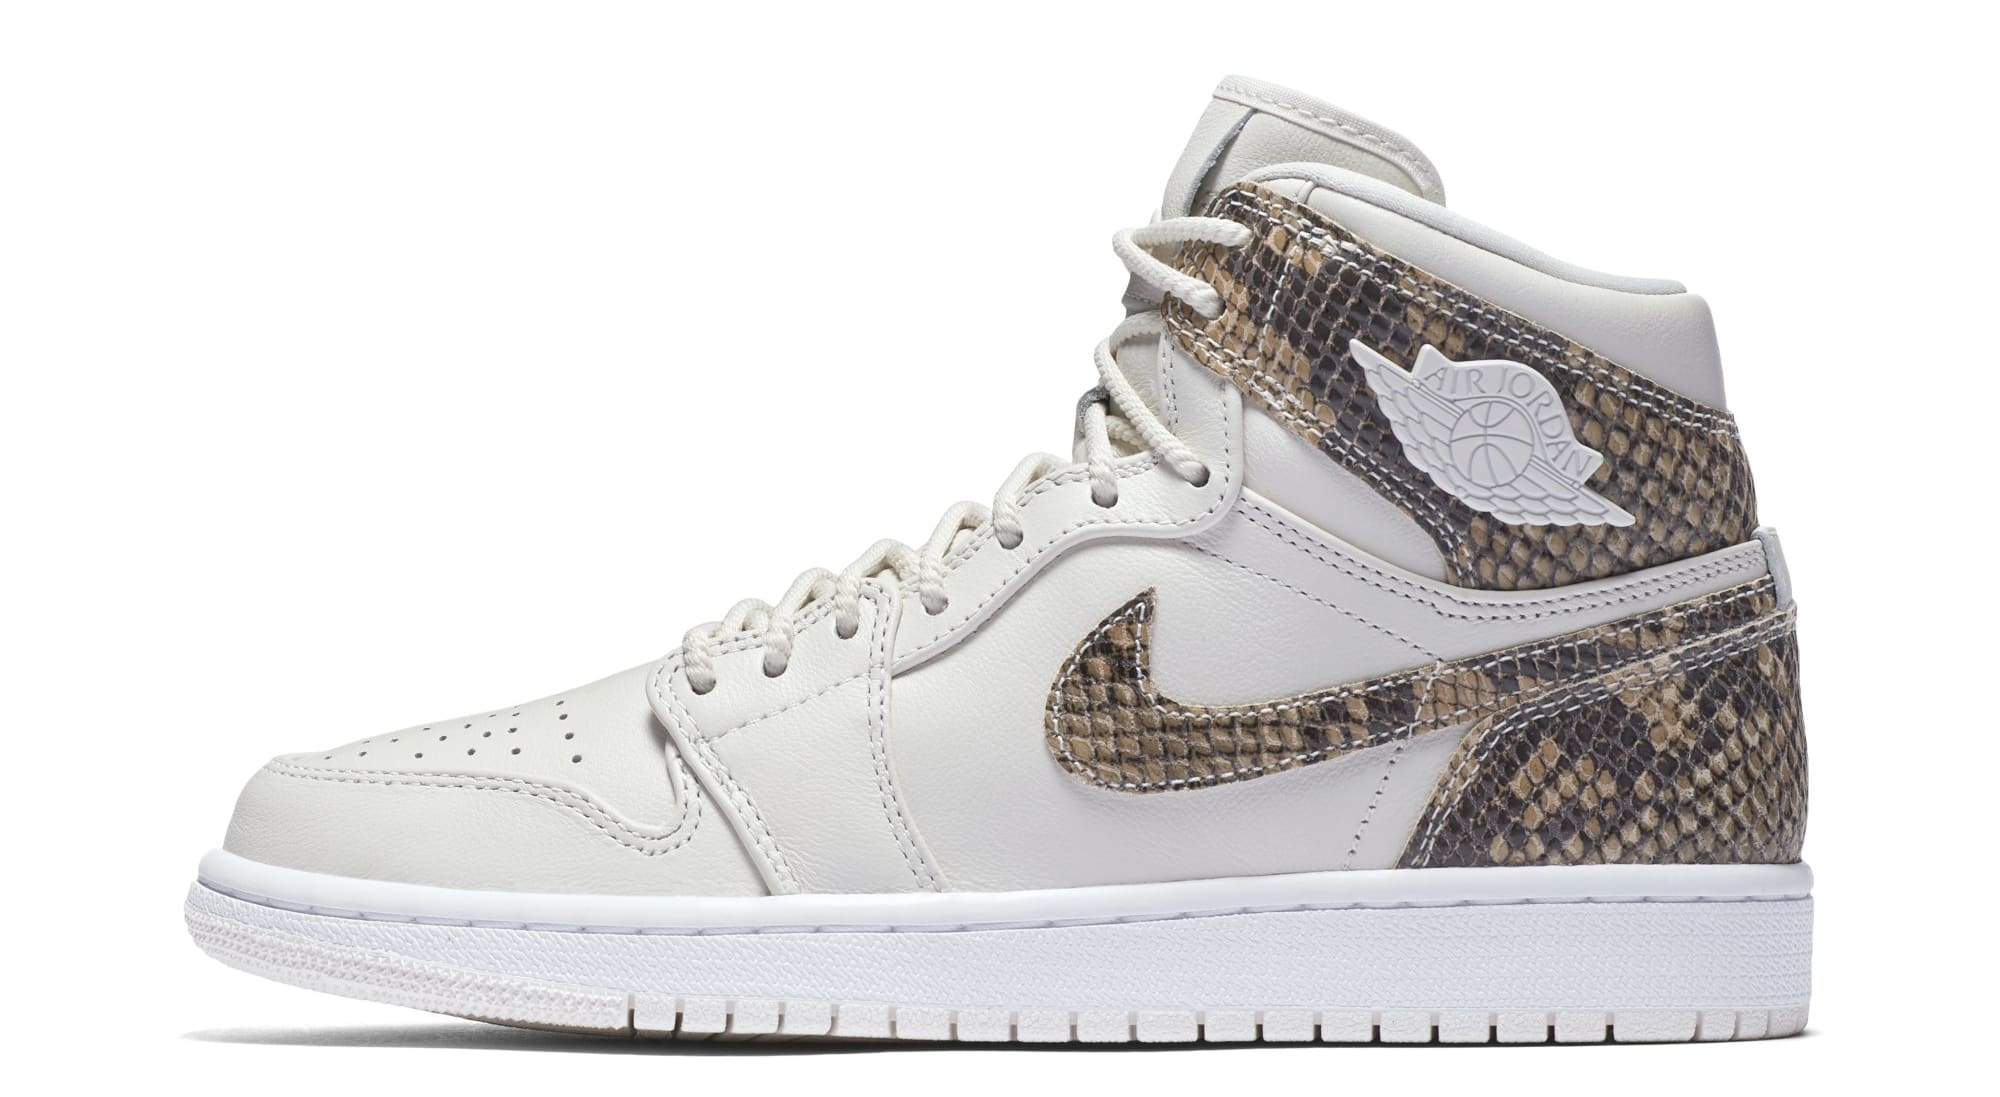 Air Jordan 1 Retro High Premium Women's Snake 'Phantom/White' AH7389-004 (Lateral)